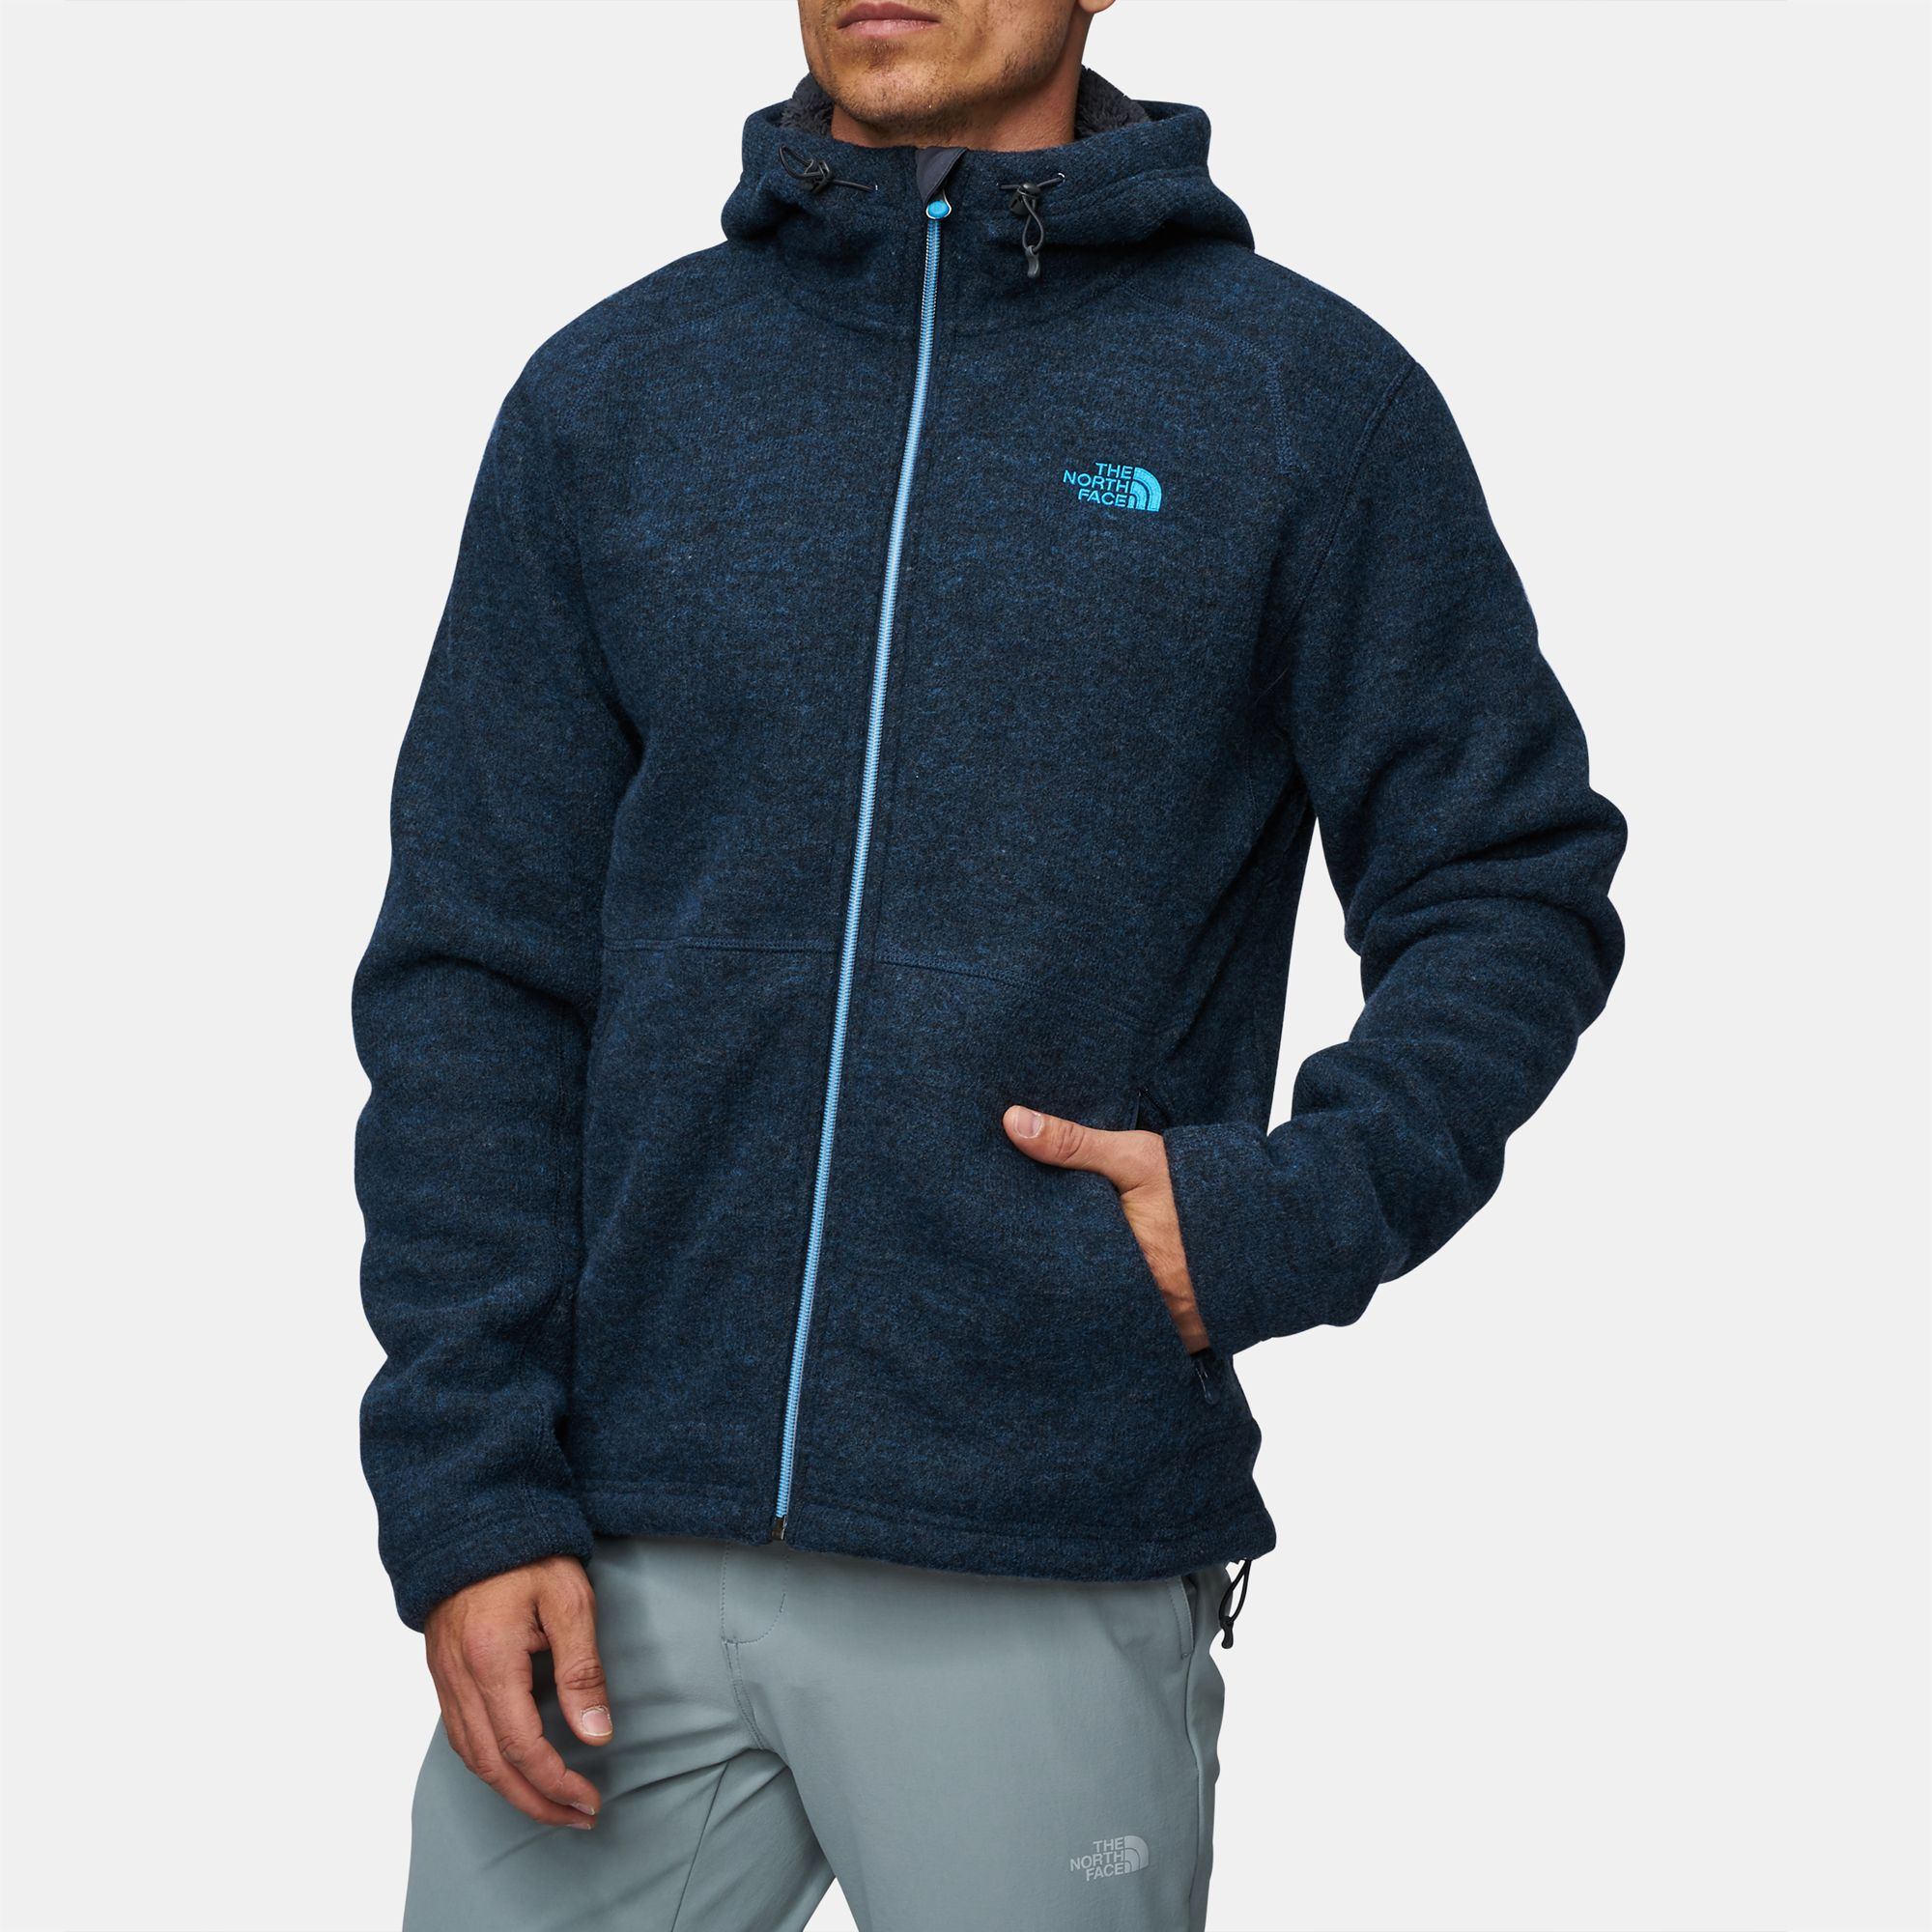 3d2876826 Shop 41 The North Face Zermatt Full Zip Hoodie for Mens by The North ...